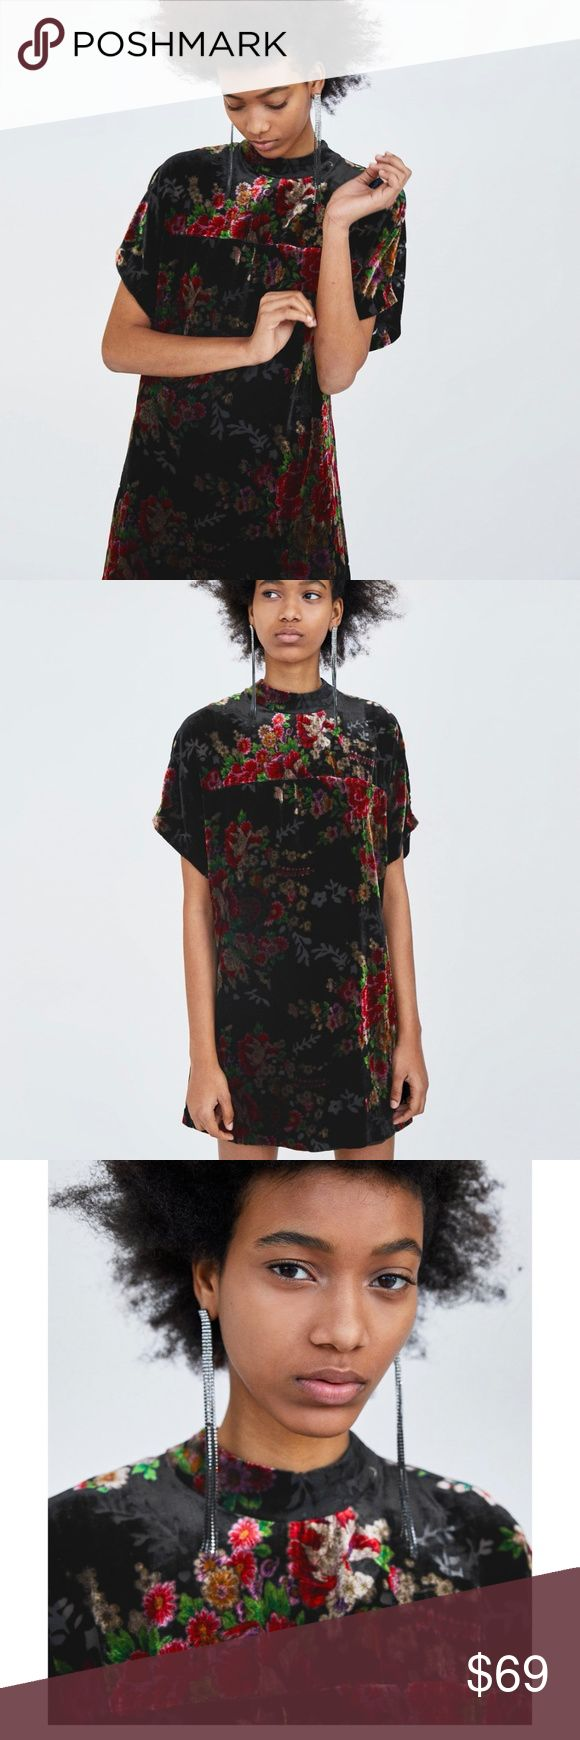 Zara floral velvet dress Zara floral printed black velvet dress. Dress with a high neck and short sleeves. Open back with button fastening on the collar.  Interior lining. Pair with denim or leggings. wear with maxi skirt for a boho chic styling.  Mini tunic dress Zara Velvet Zara Dresses Mini